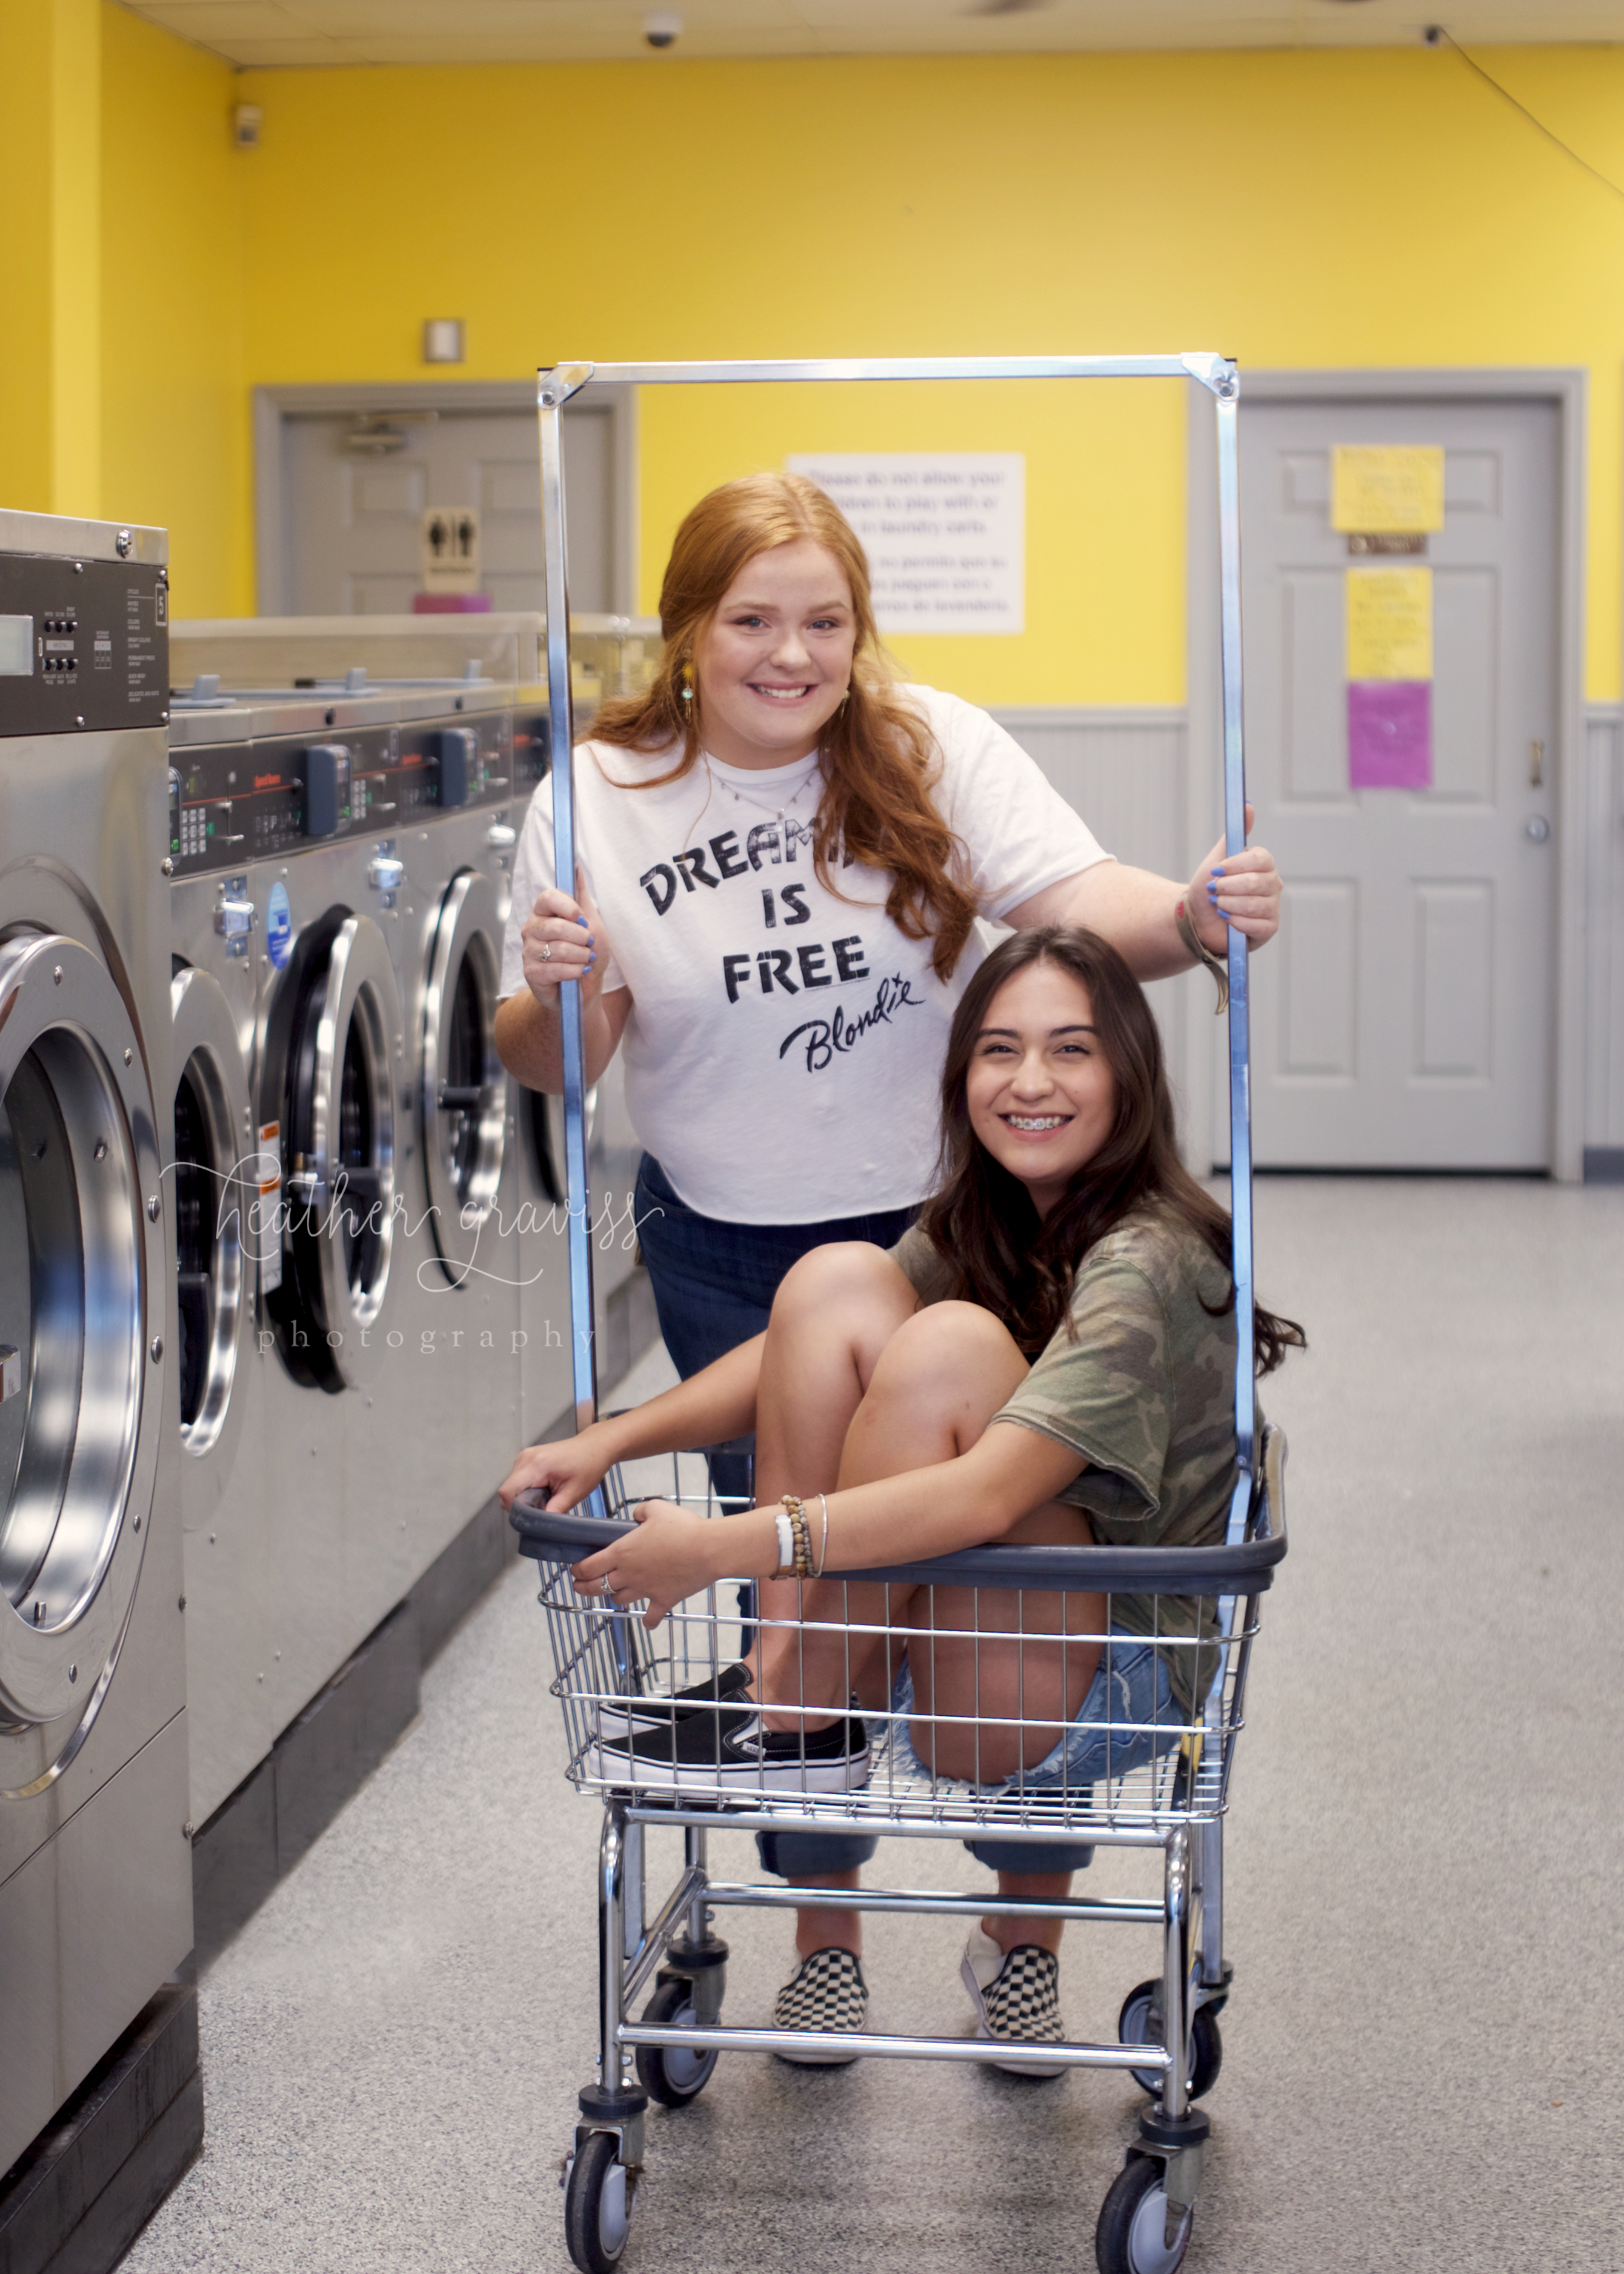 laundry-girls.jpg